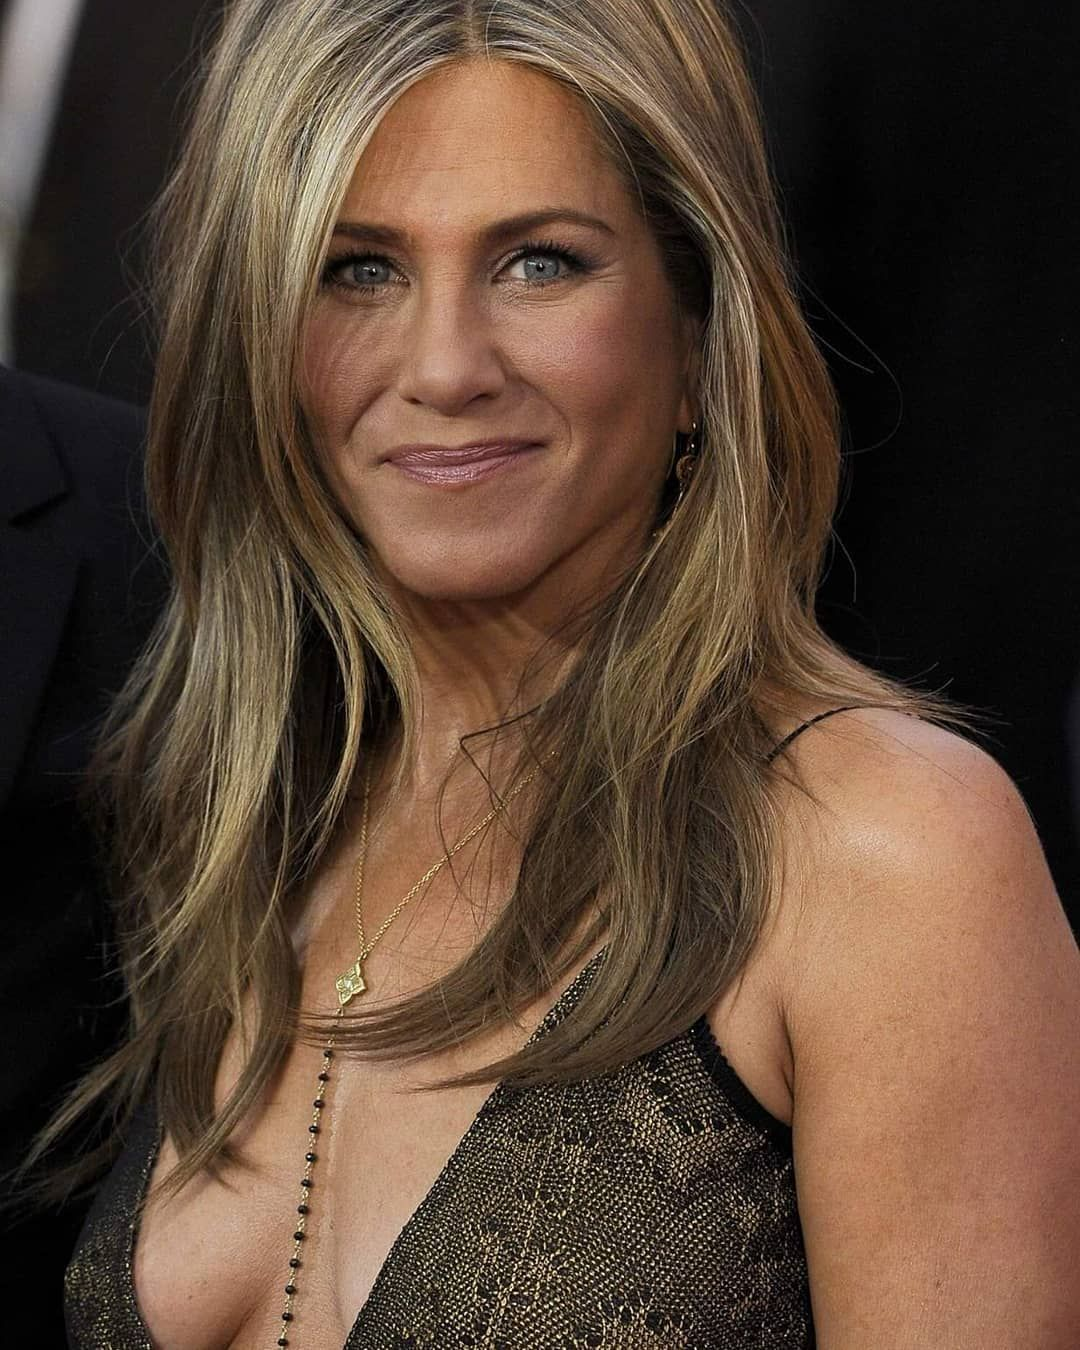 Jennifer Aniston 😍😍 Checkout the link in my bio #jenniferaniston #beauty #beautiful #movies #insta #...